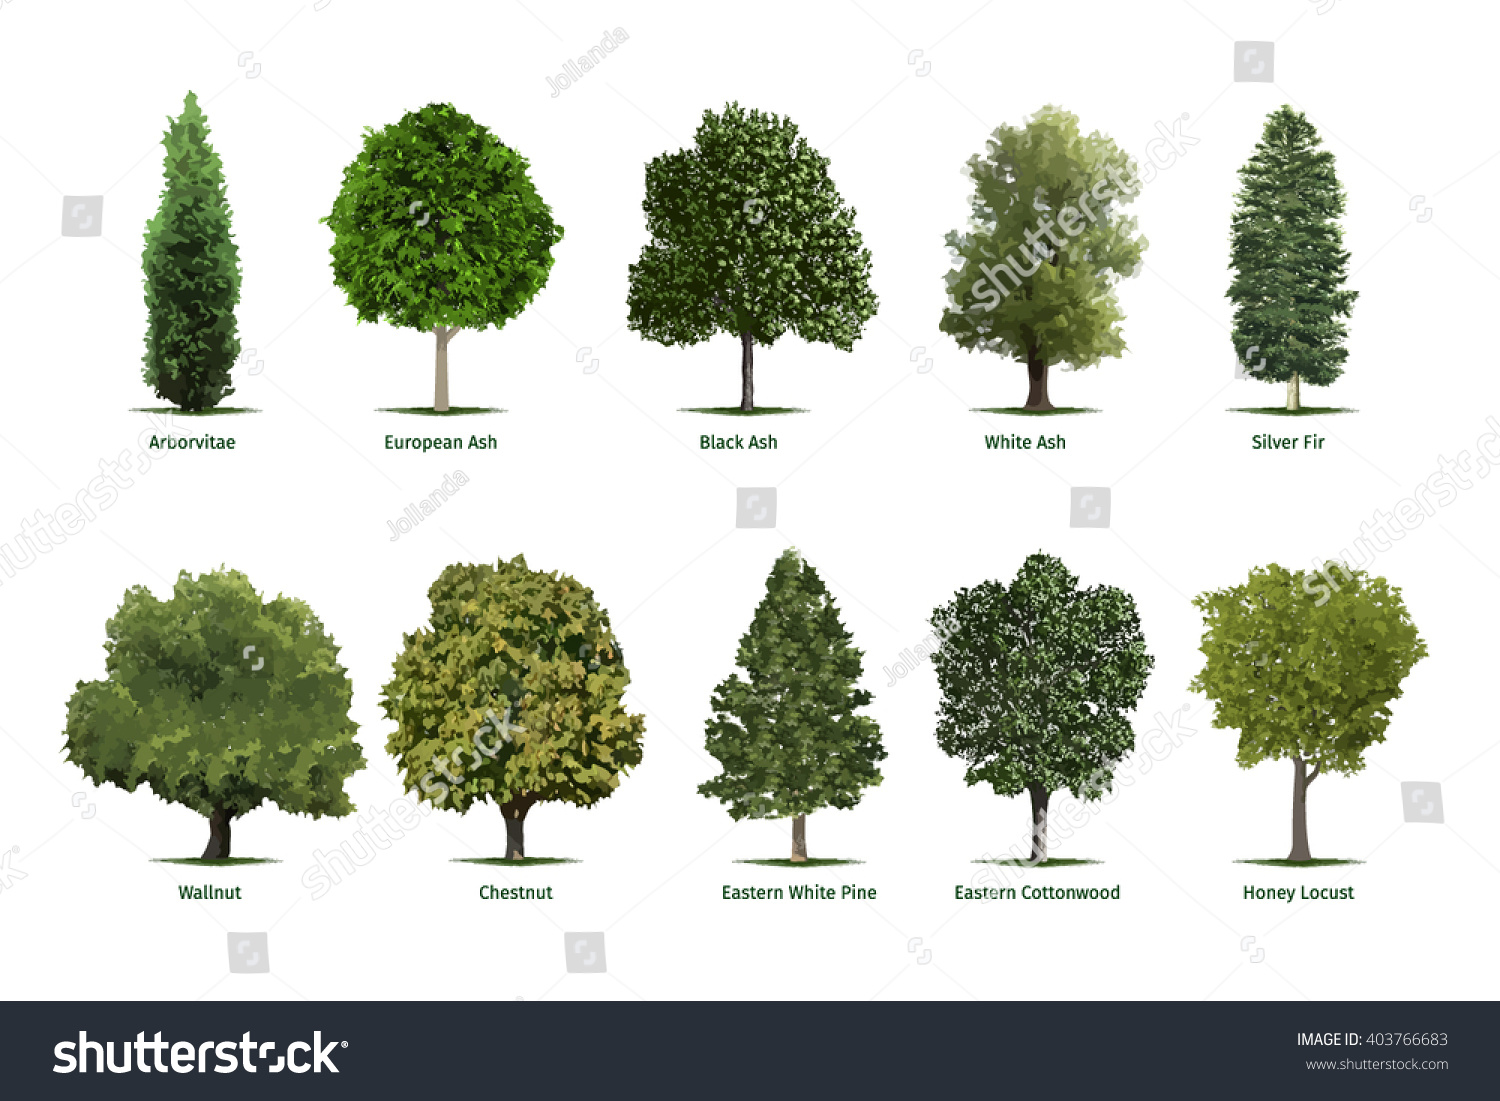 Pin Fir Tree Types And Facts On The Species On Pinterest